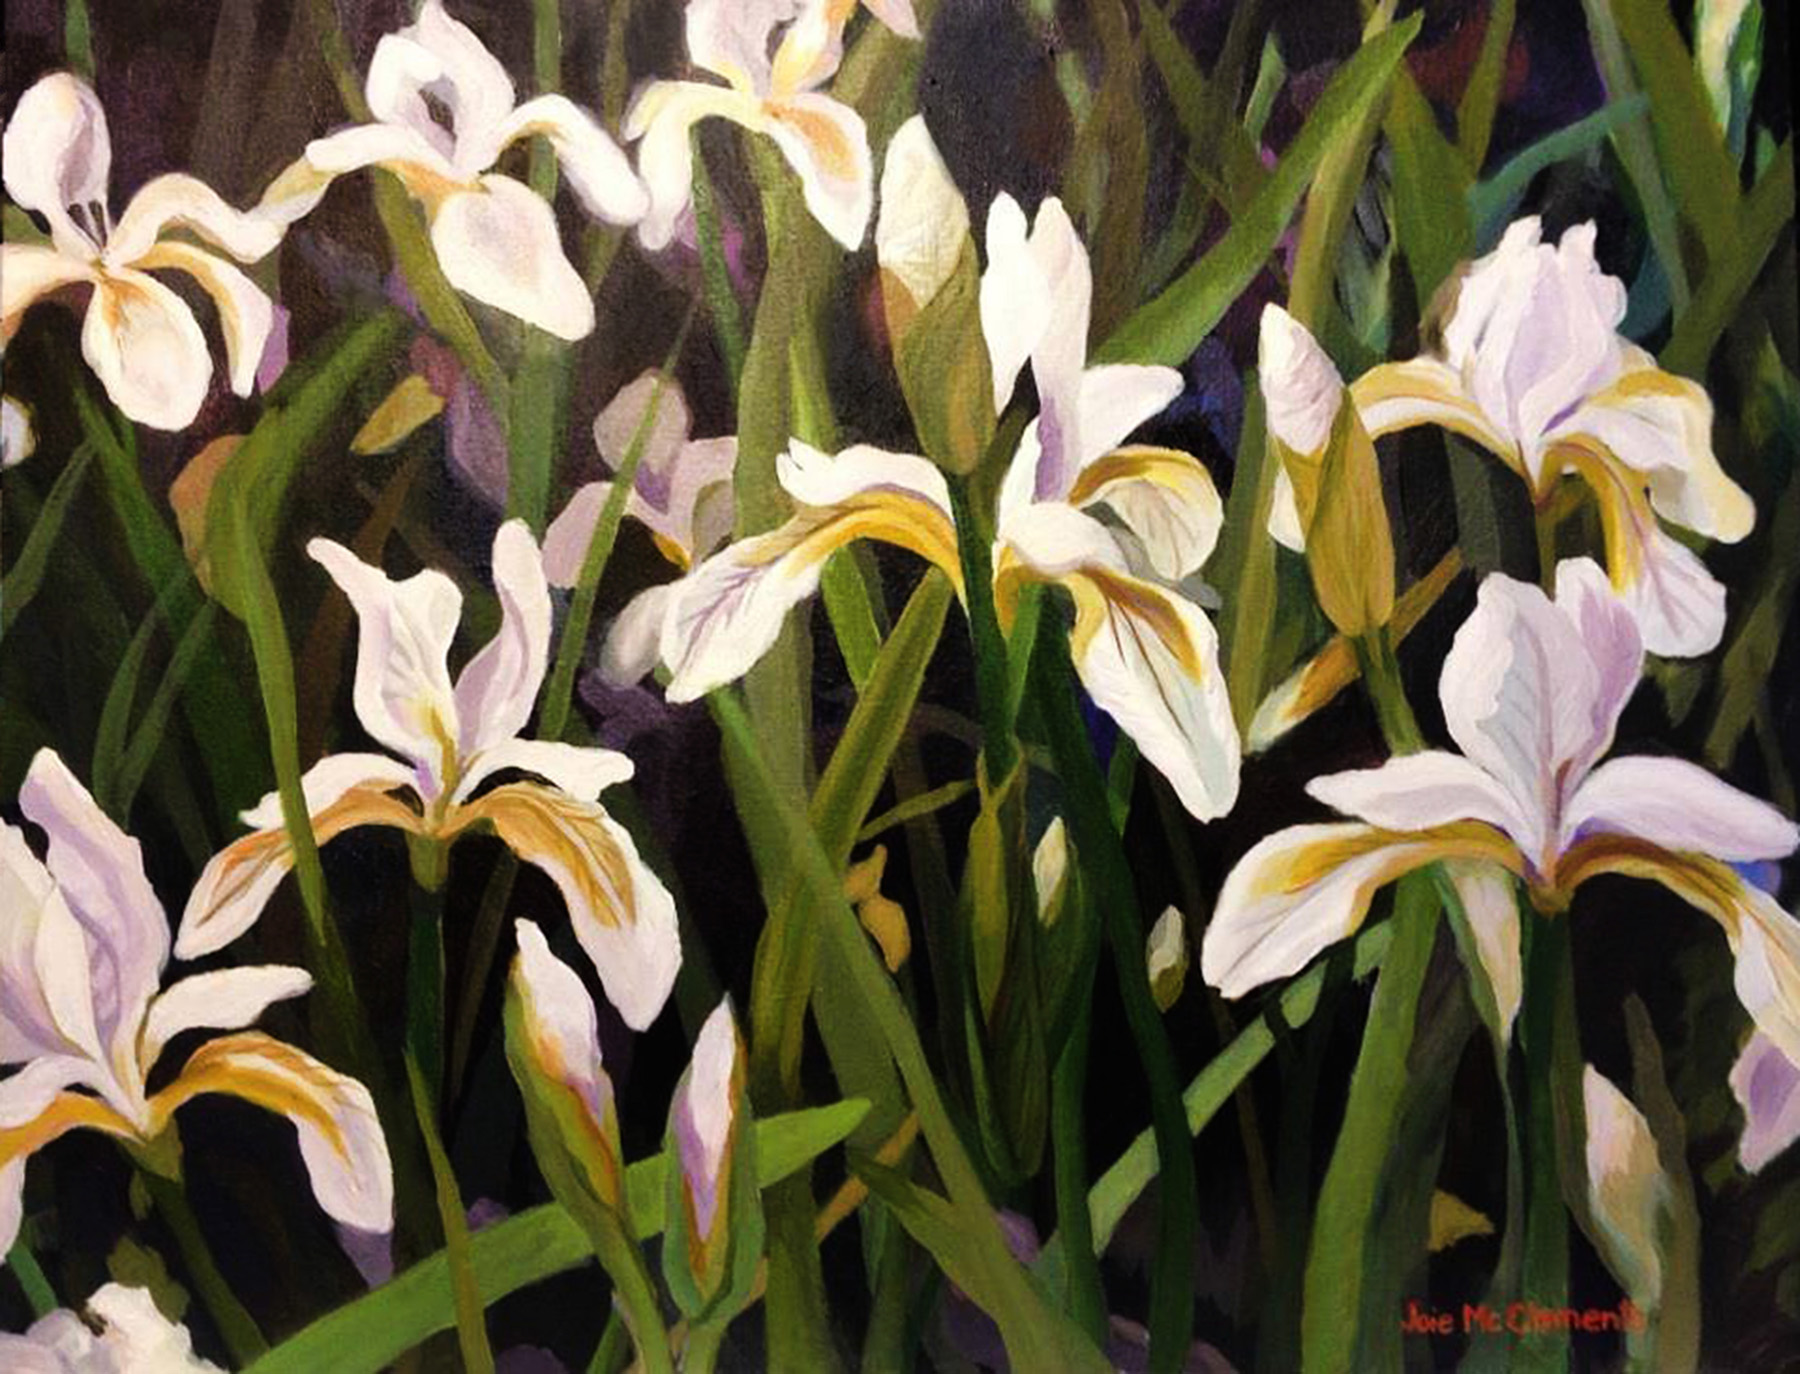 Joie_McClements_Field of Iris